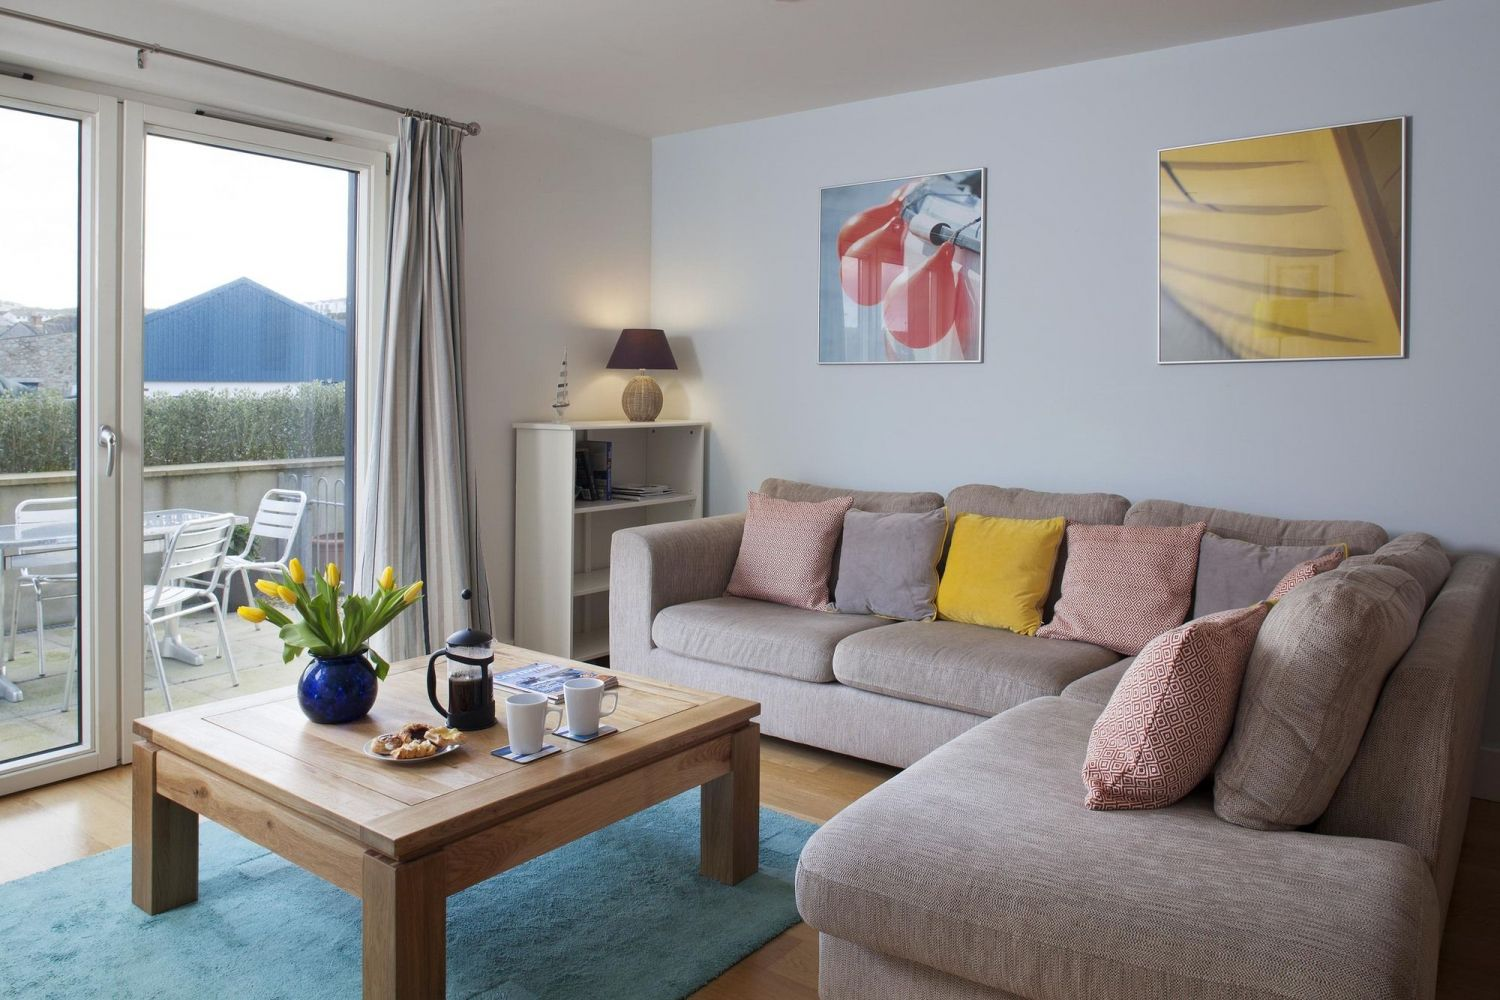 Spinnaker Apartment - Porthleven Holiday Cottages